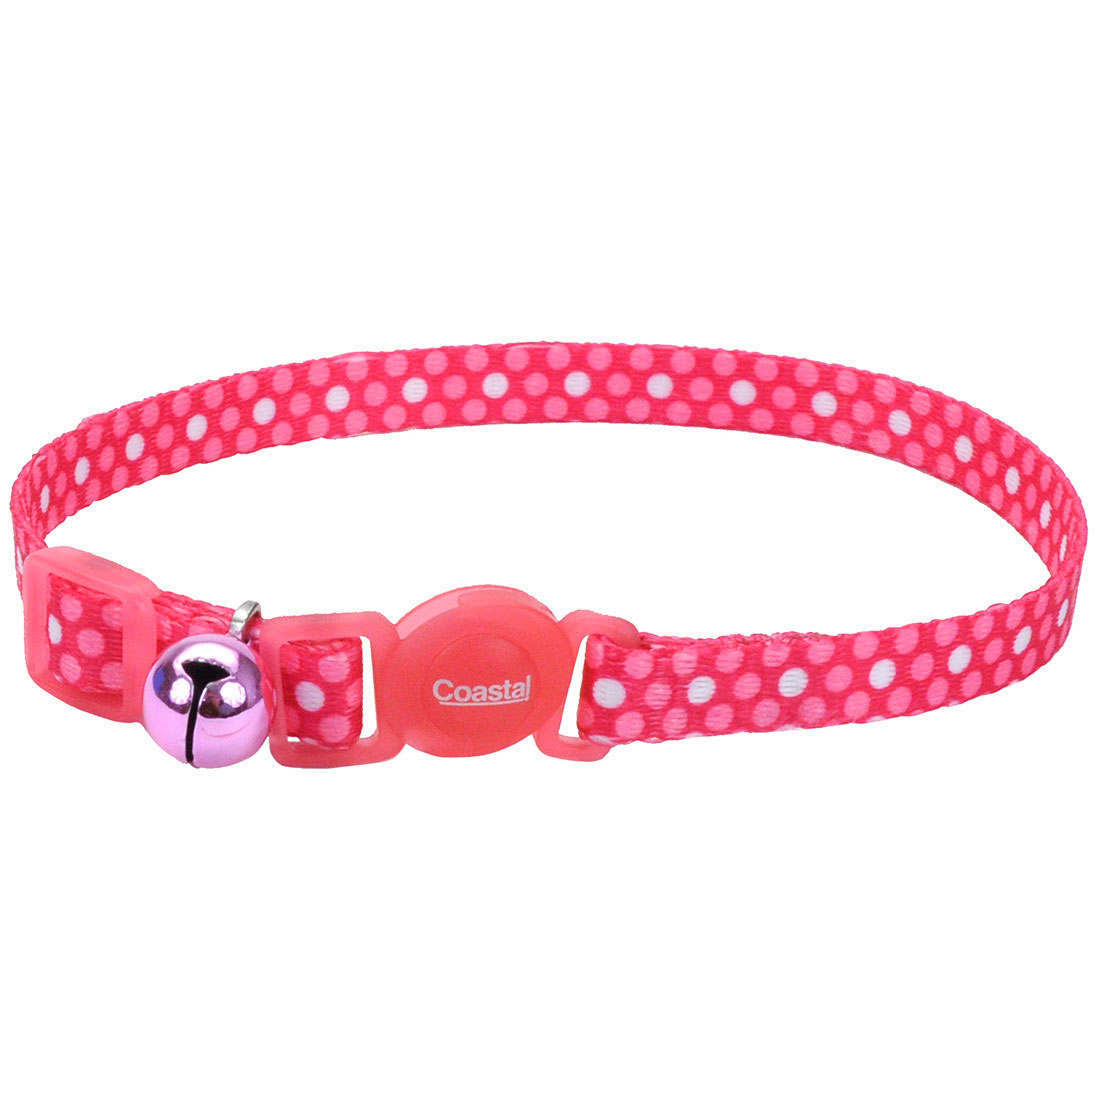 Safe Cat Fashion Adjustable Breakaway Cat Collar, Pink Dots, 3/8-in x 8-in-12-in